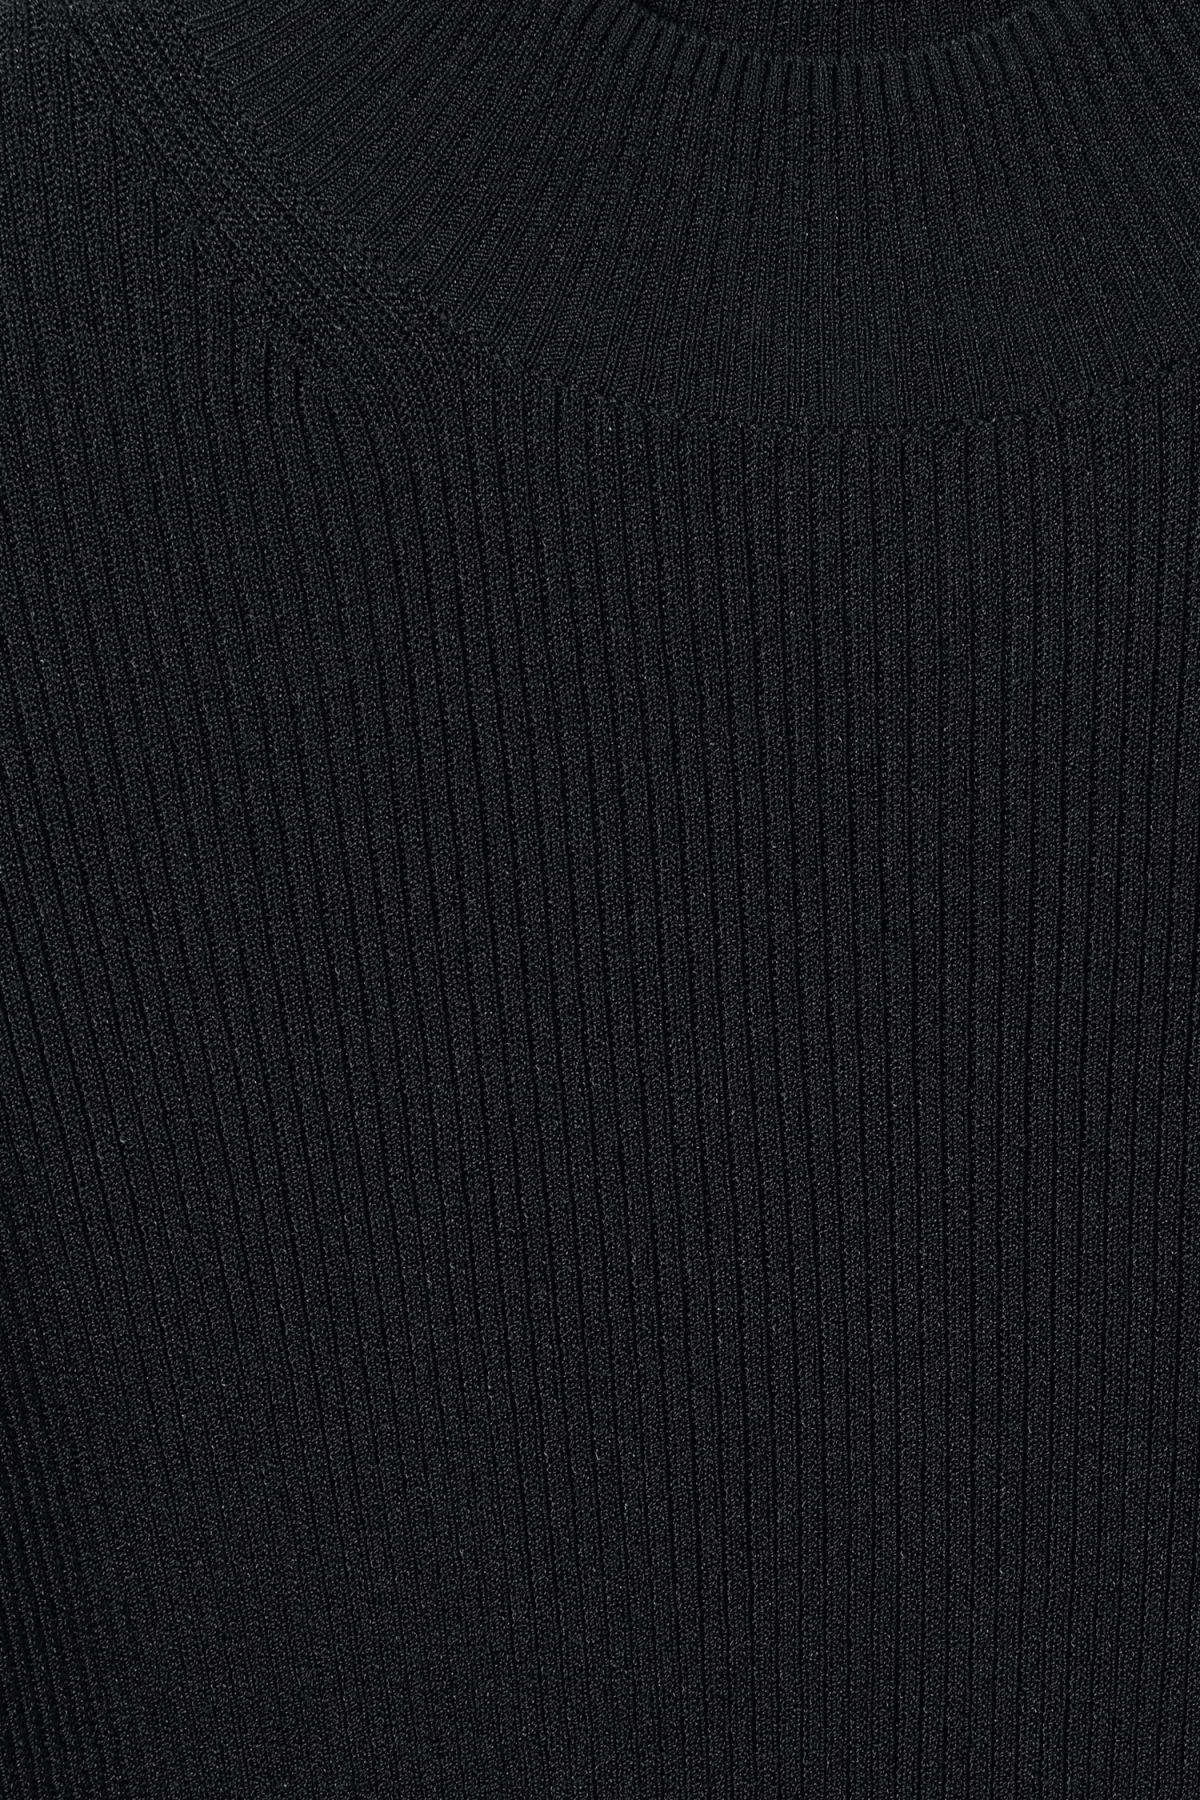 Detailed image of Weekday haze knit top in black